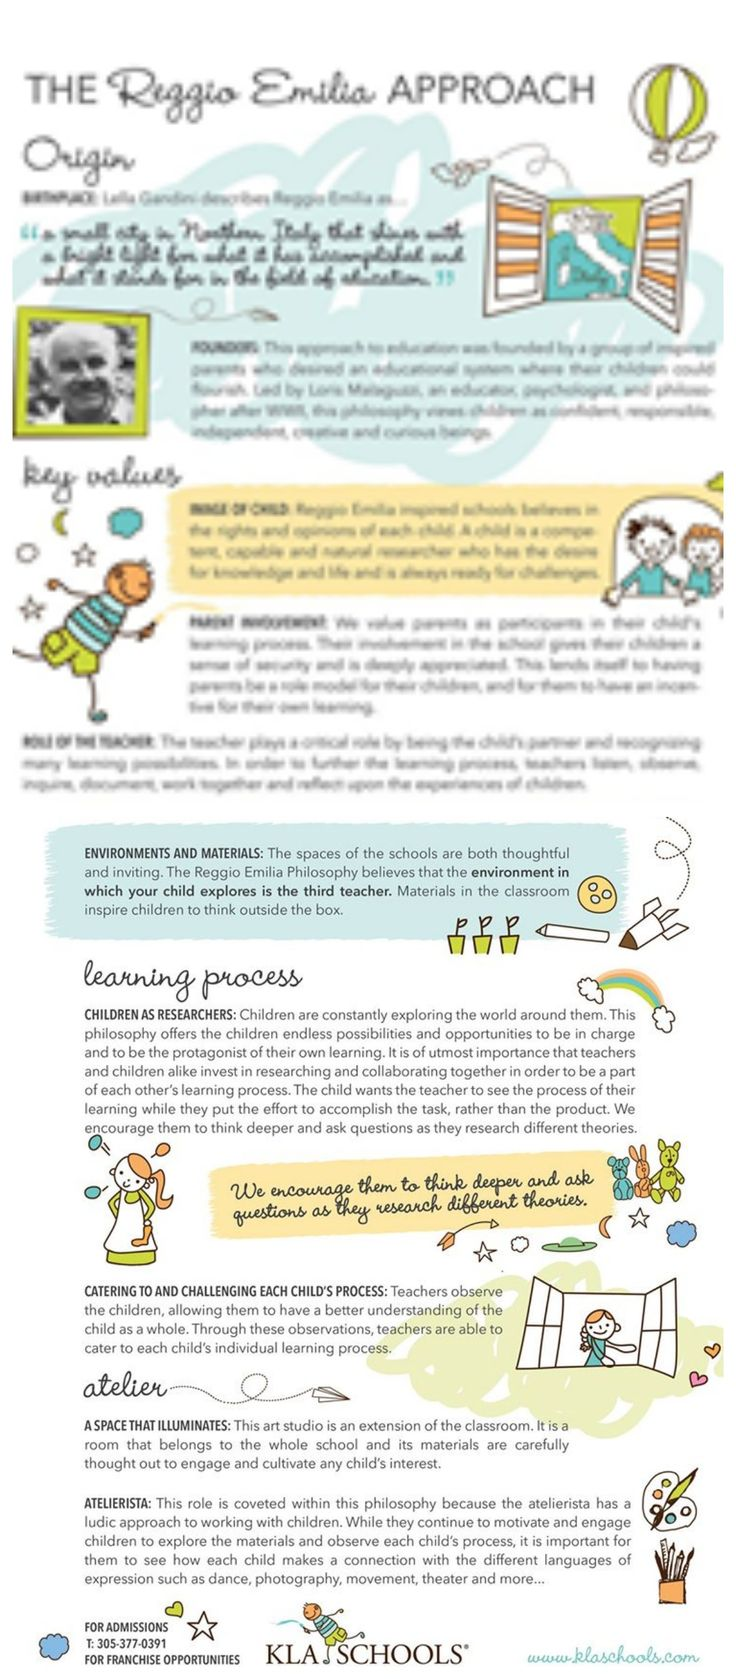 KLA Schools has produced a beautiful graphic to explain, in simple terms, the Reggio approach. Enjoy!